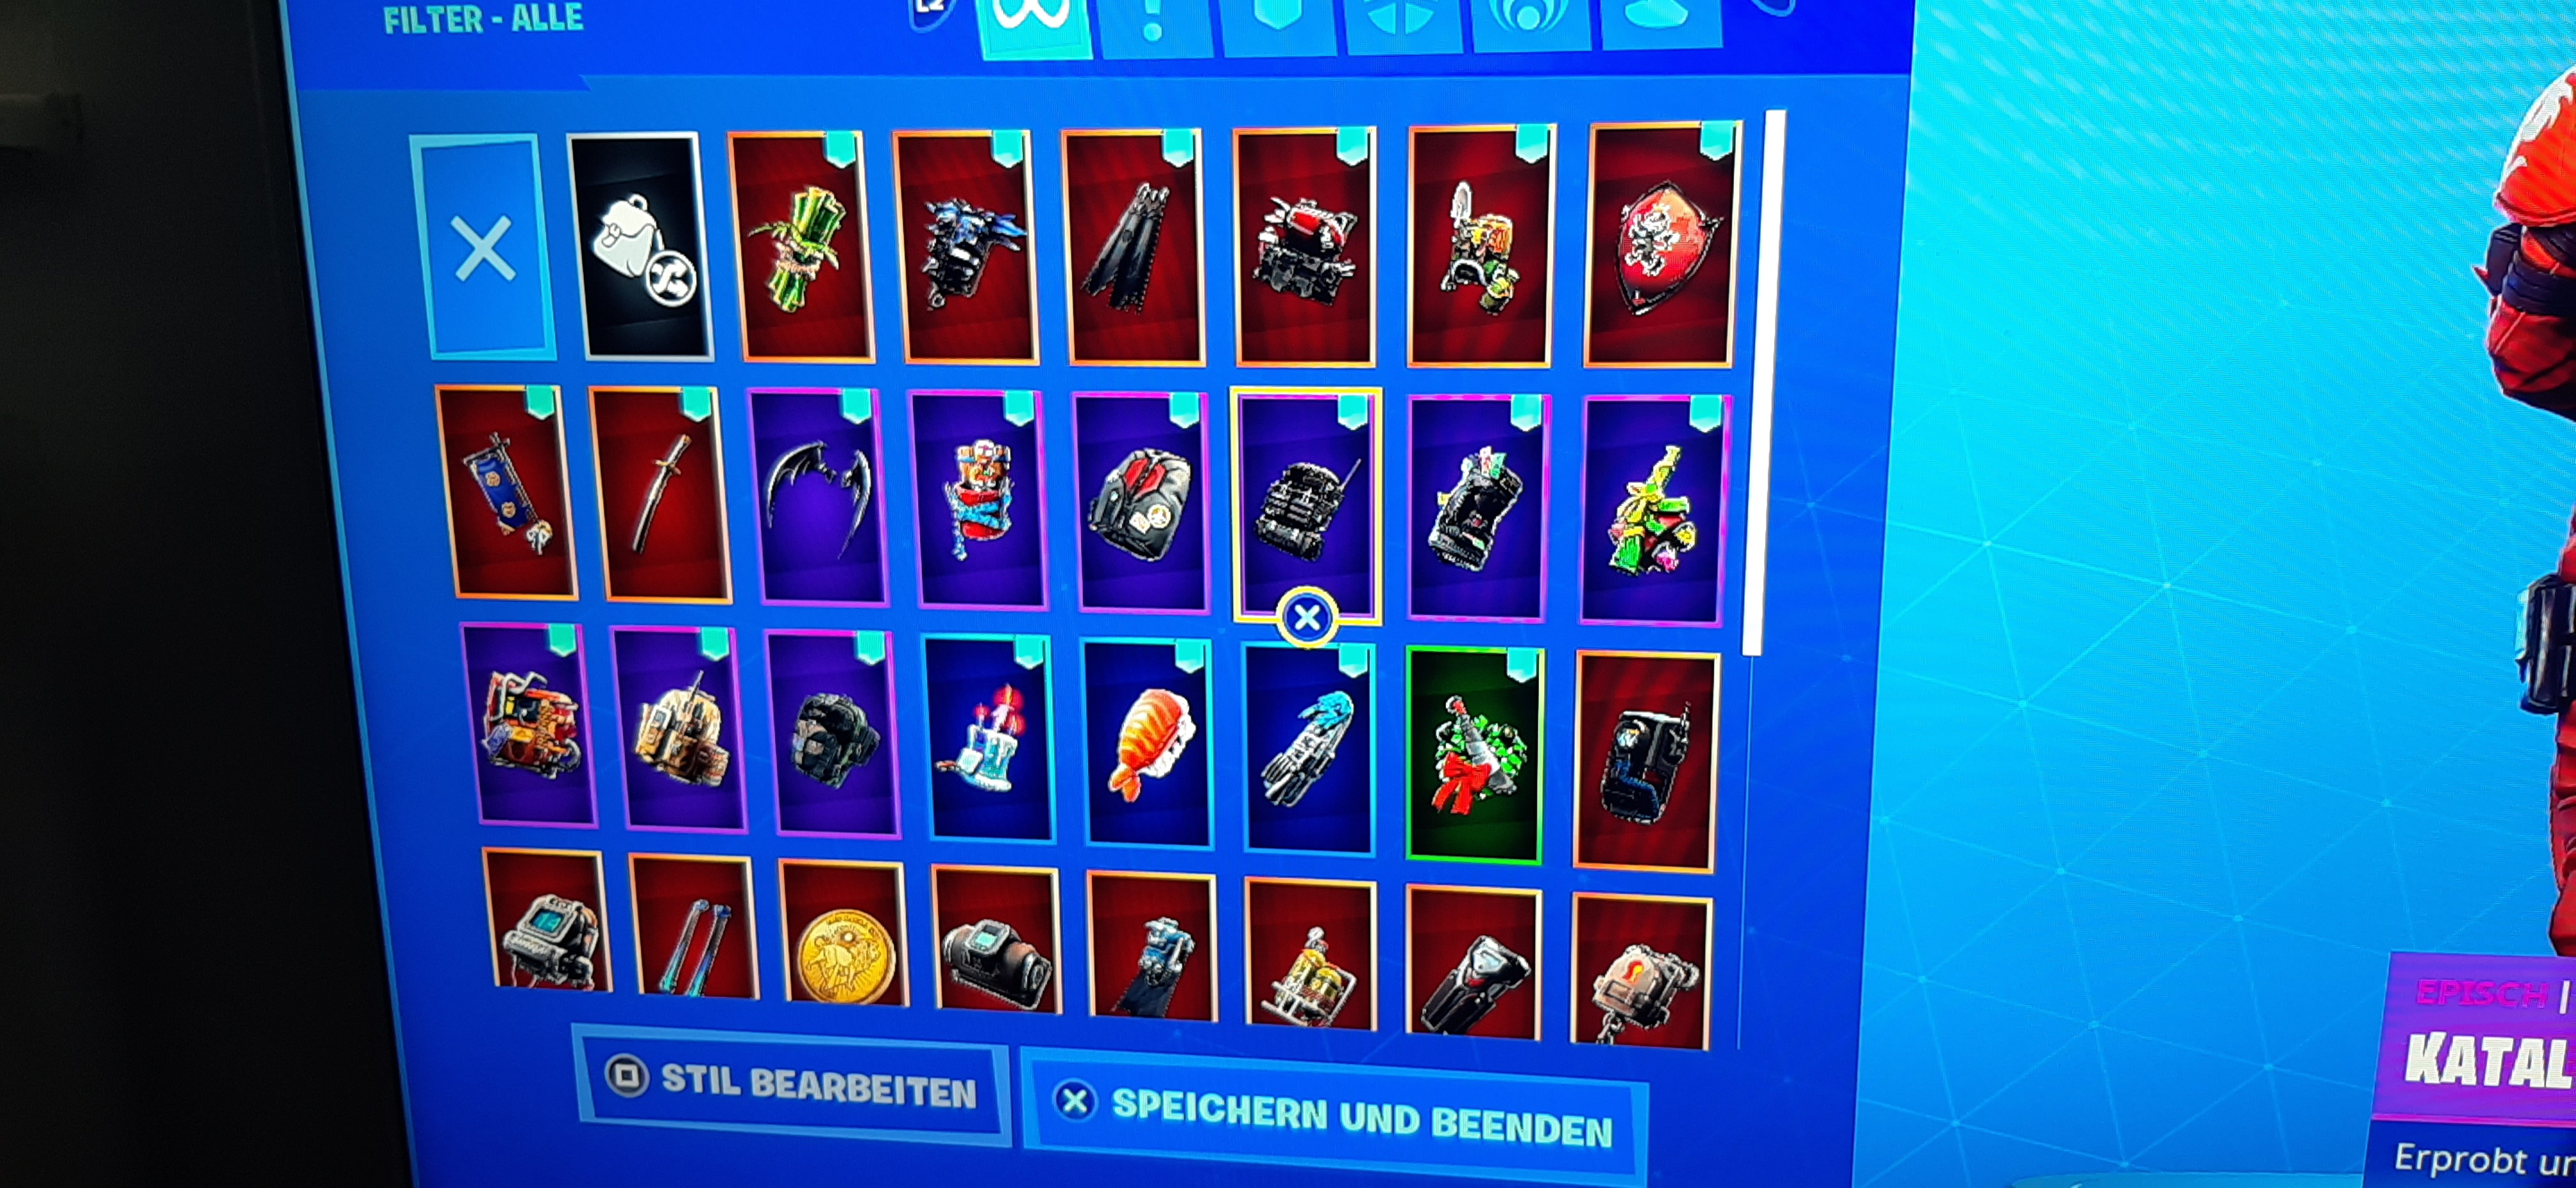 !!!SELLING FORTNITE ACC FOR 55 EUR!!! ITEM SHOP SKINS WORTH 194 EUR!!!!